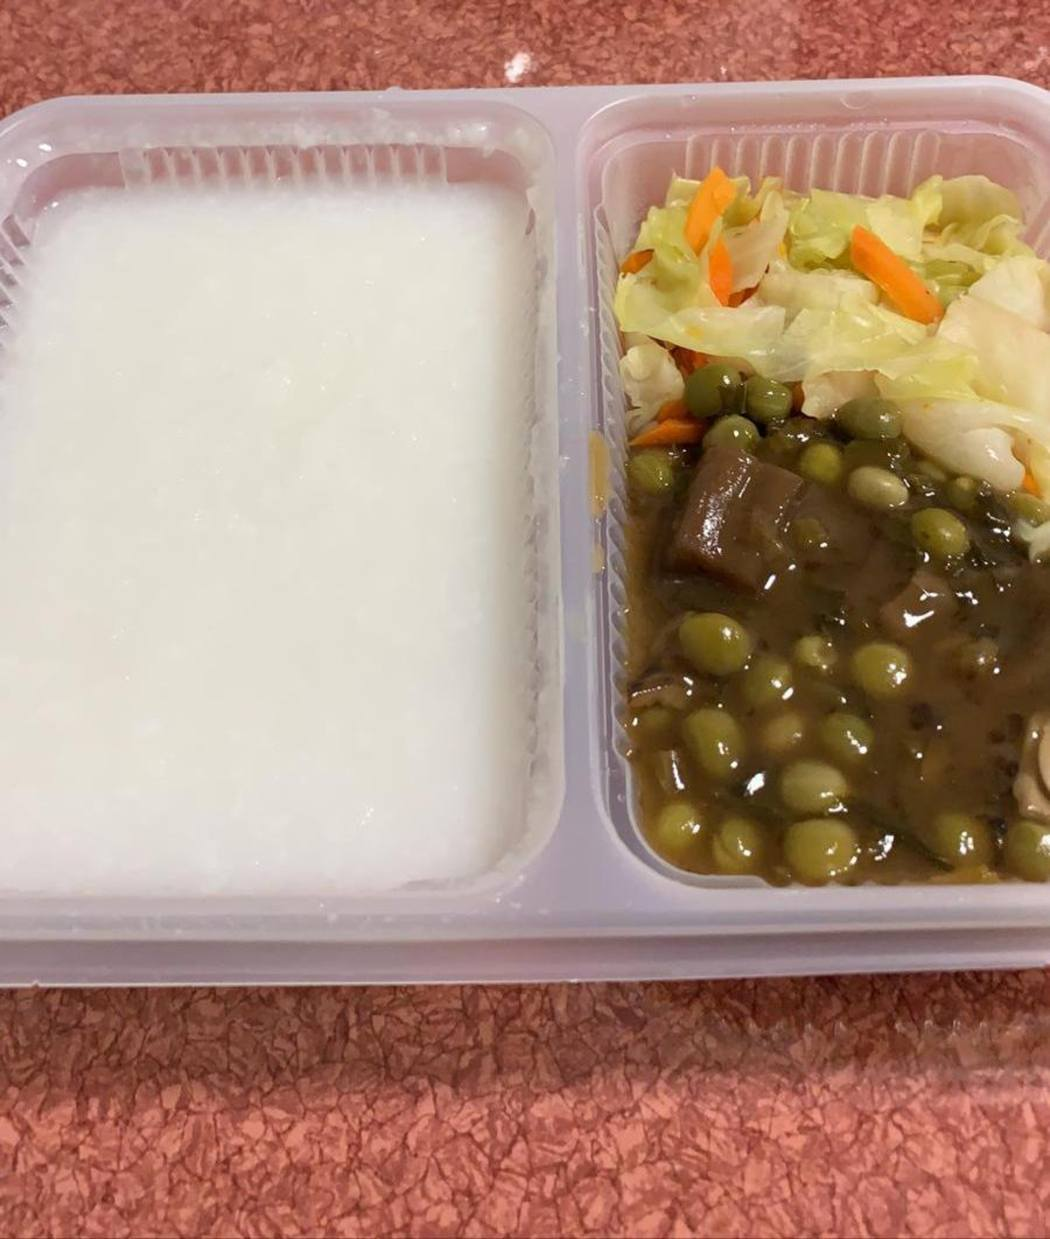 quarantine camp food danny catering services limited covid 6